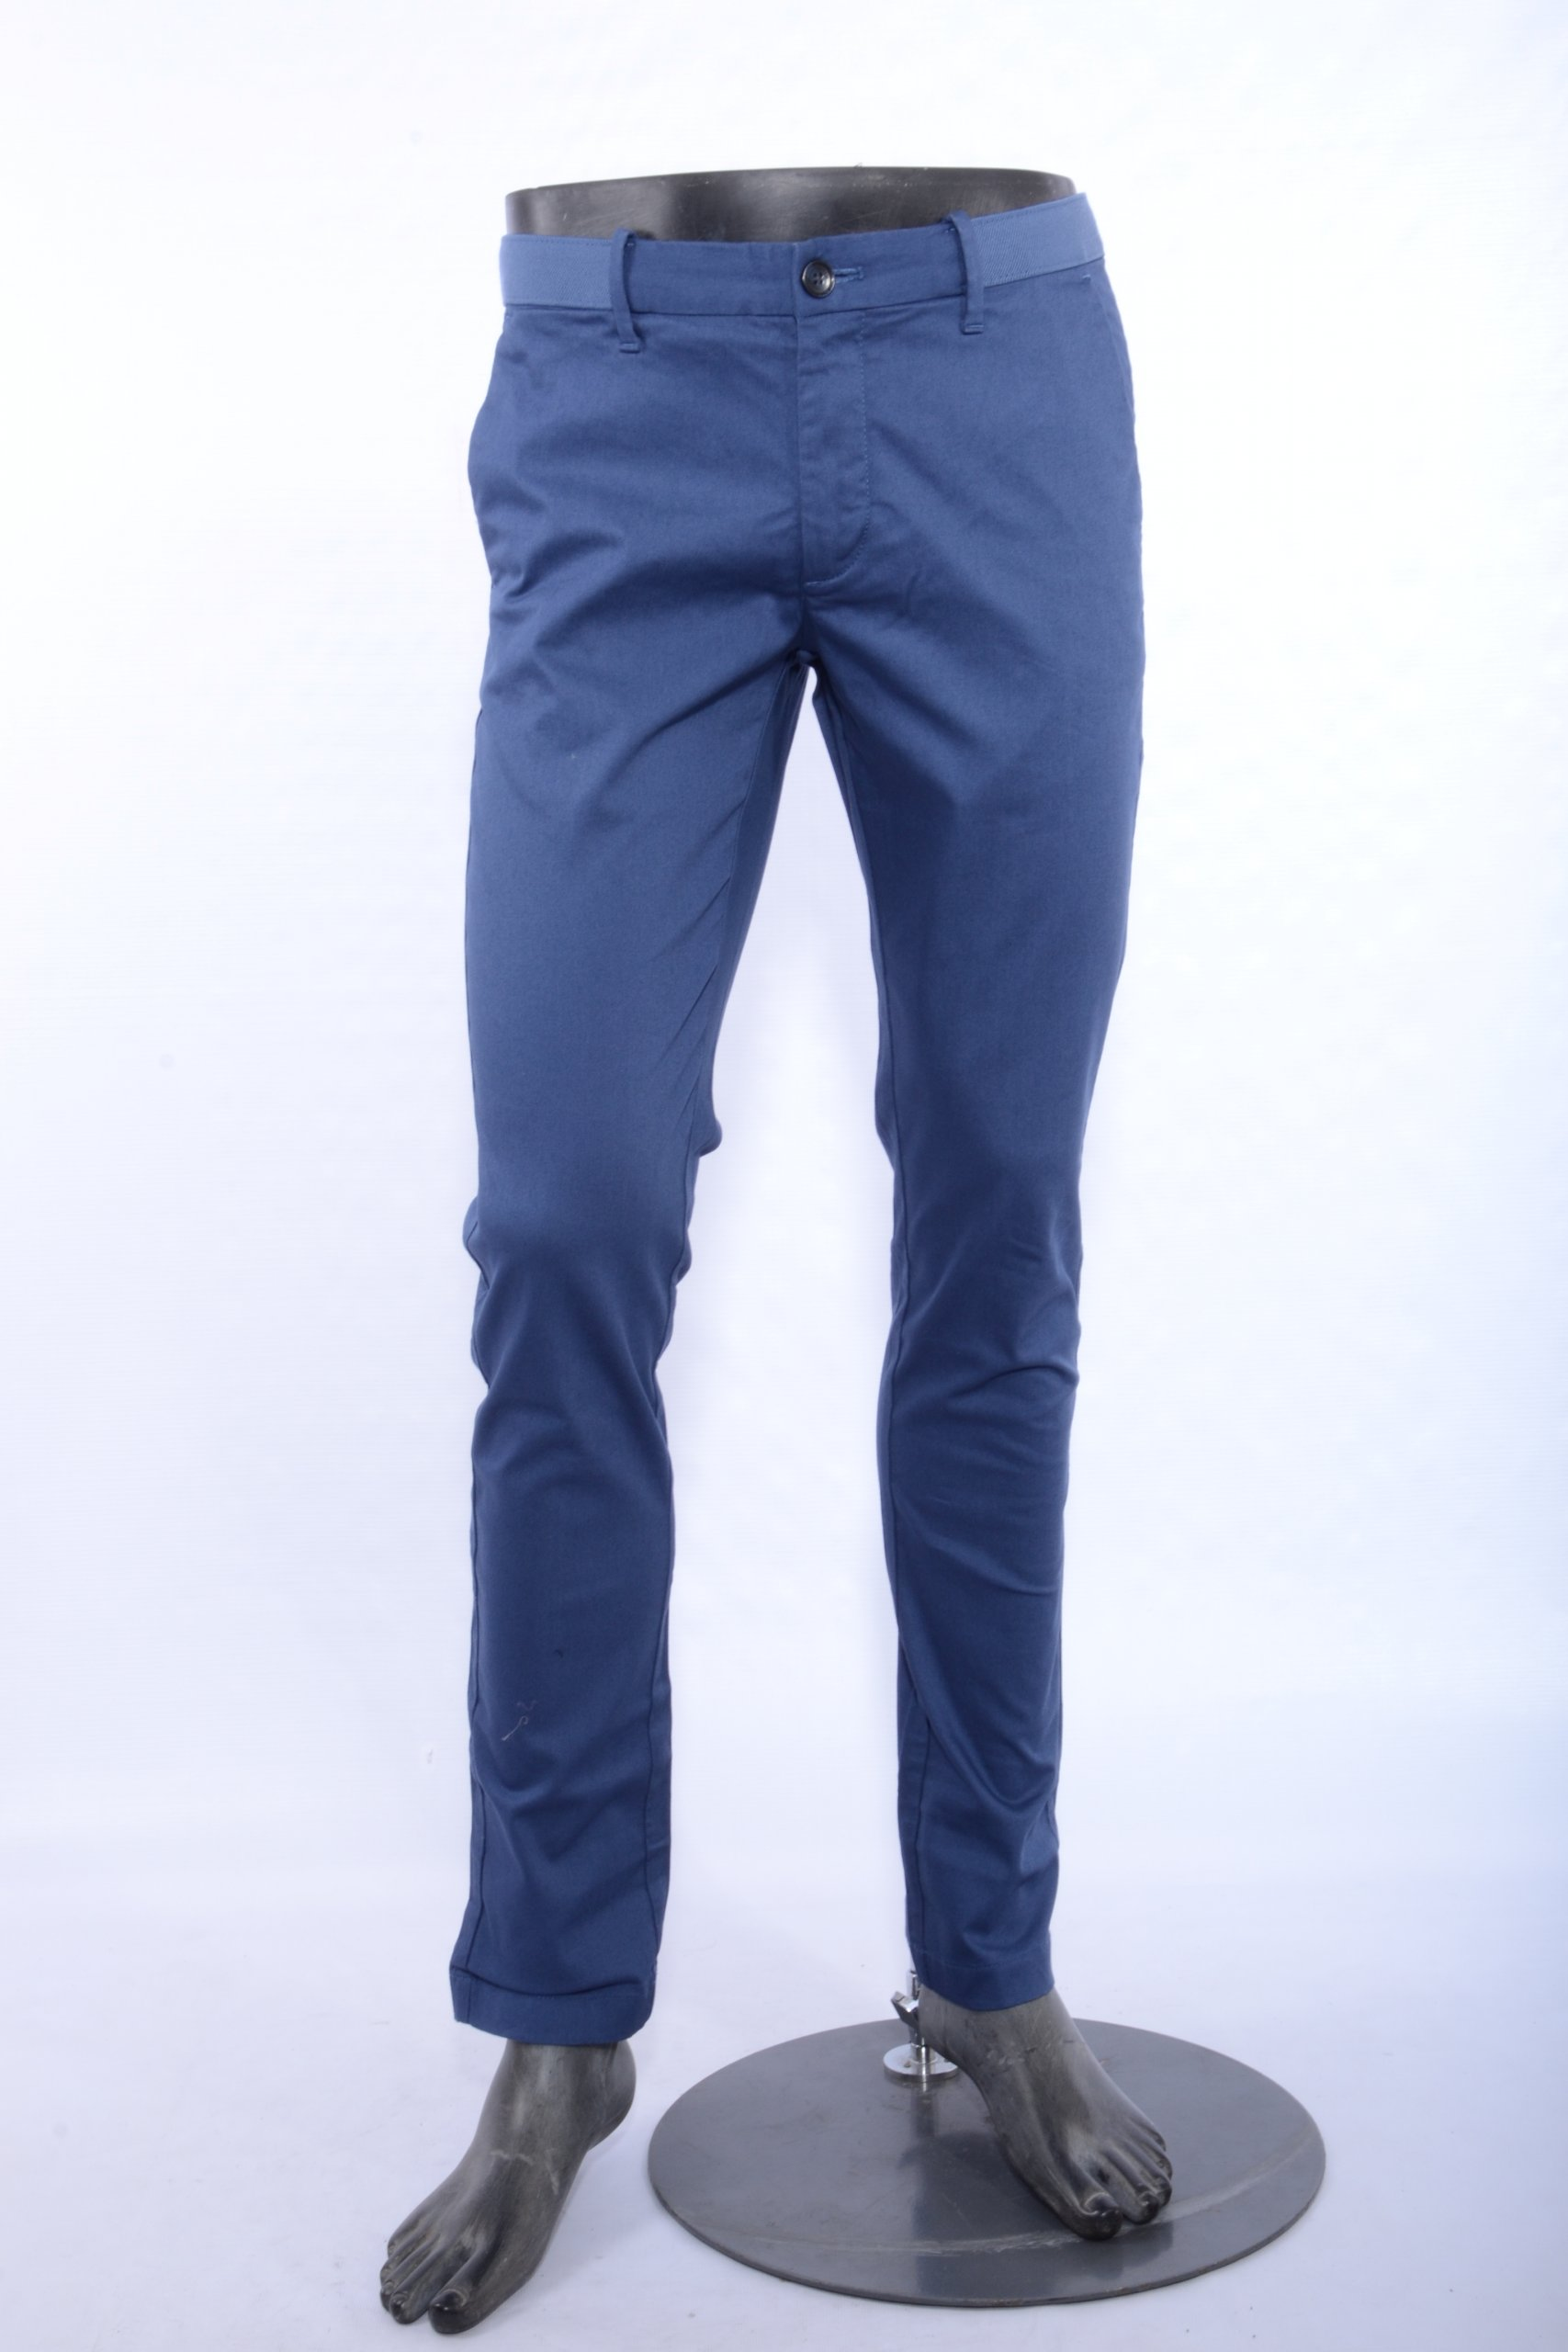 Green Coloured Trouser by Indian Terrain